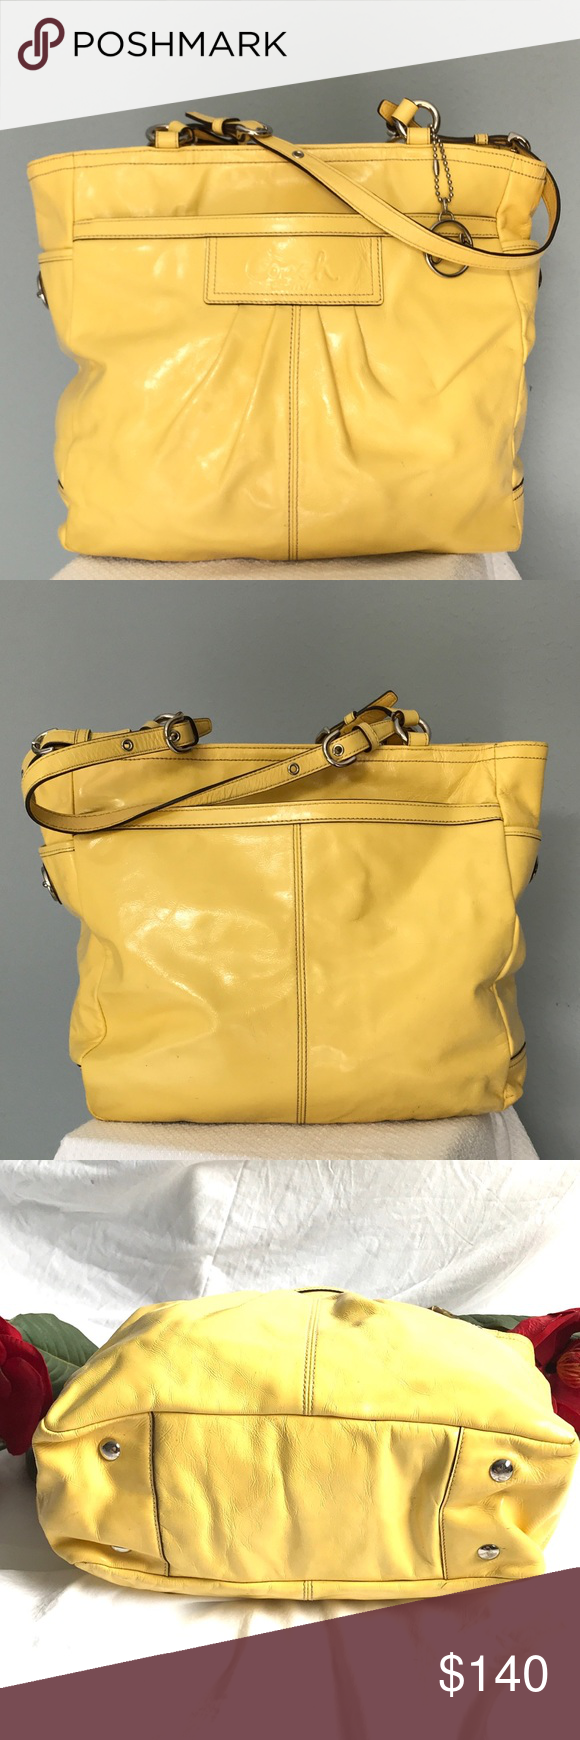 Coach patent leather shoulder bag Yellow shoulder bags